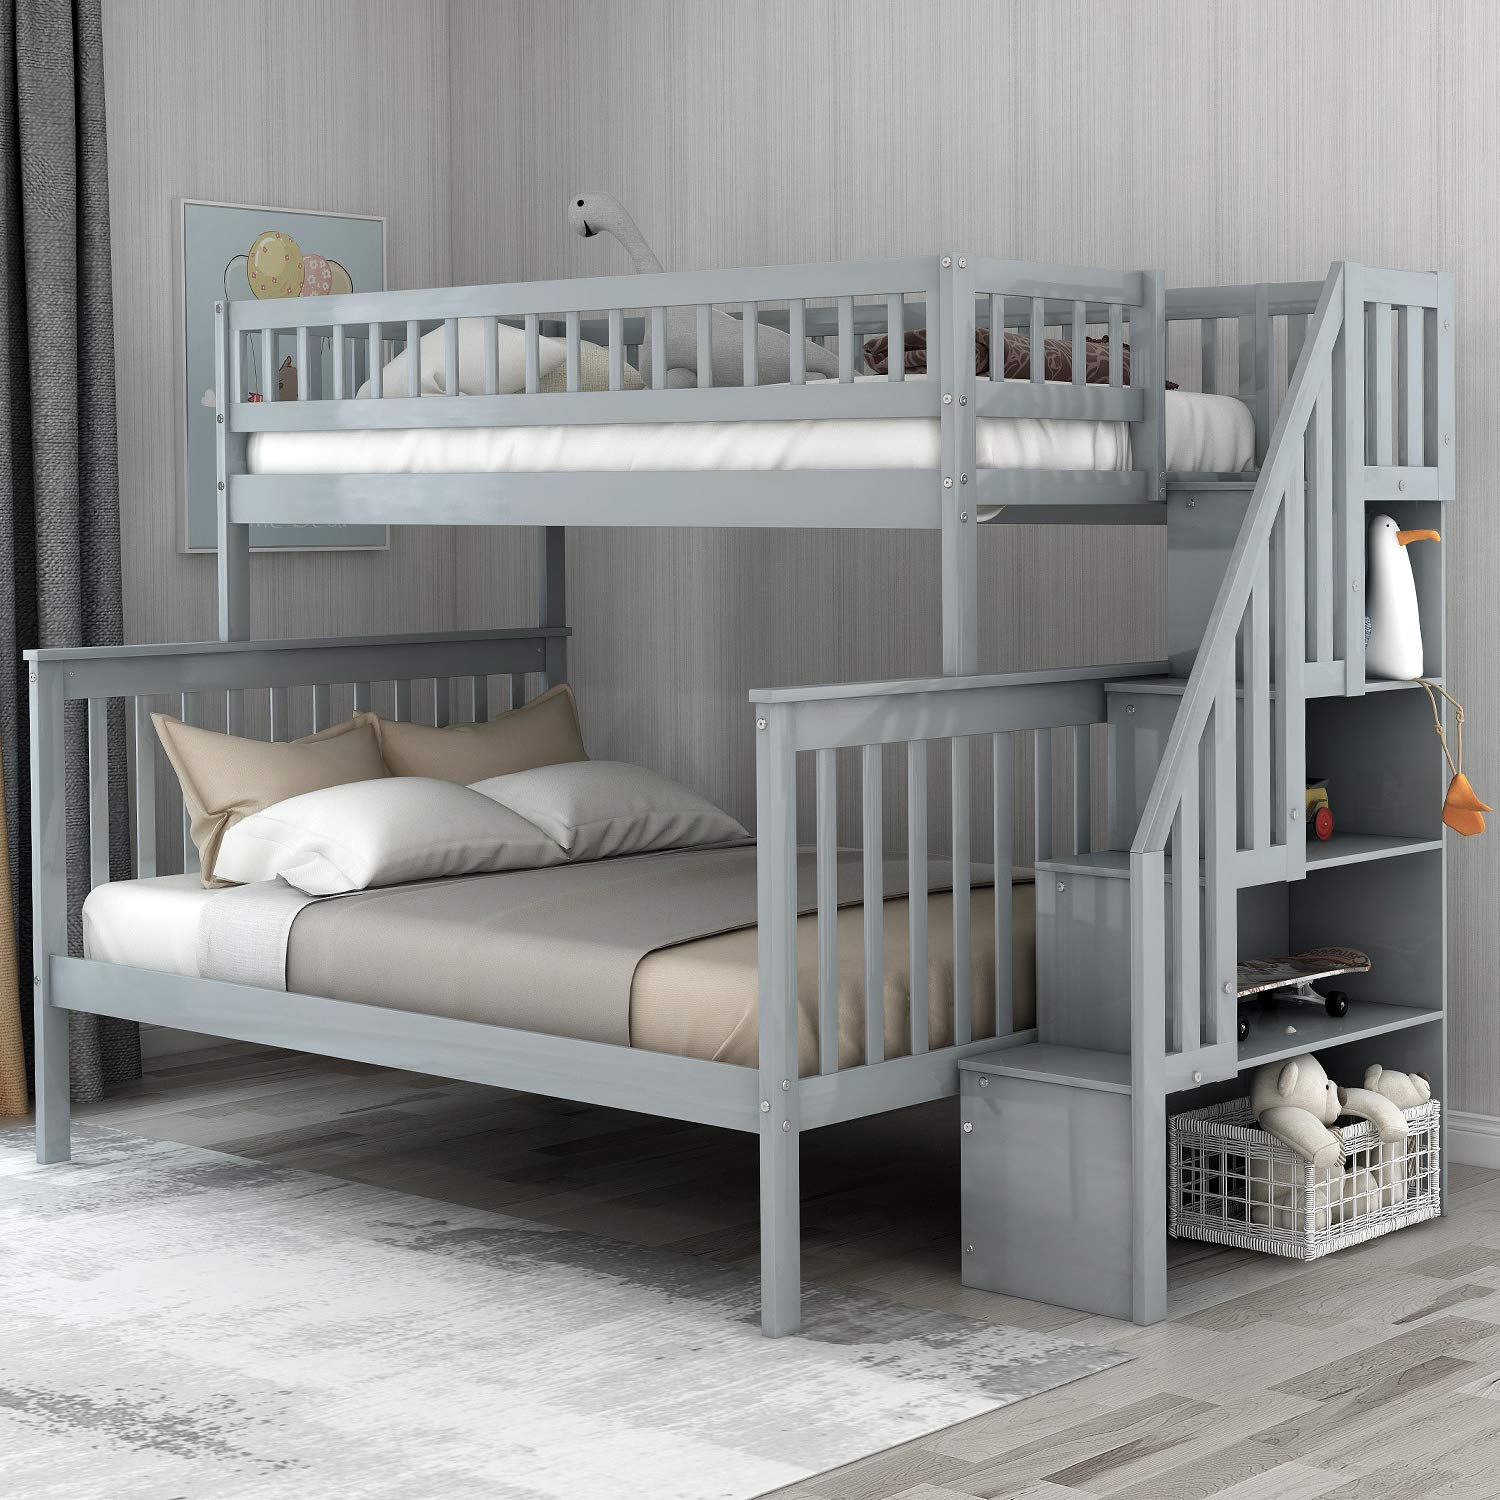 Twin-Over-Full Bunk Bed for Kids with Storage and Stair Loft, Neutral Grey by WeYoung